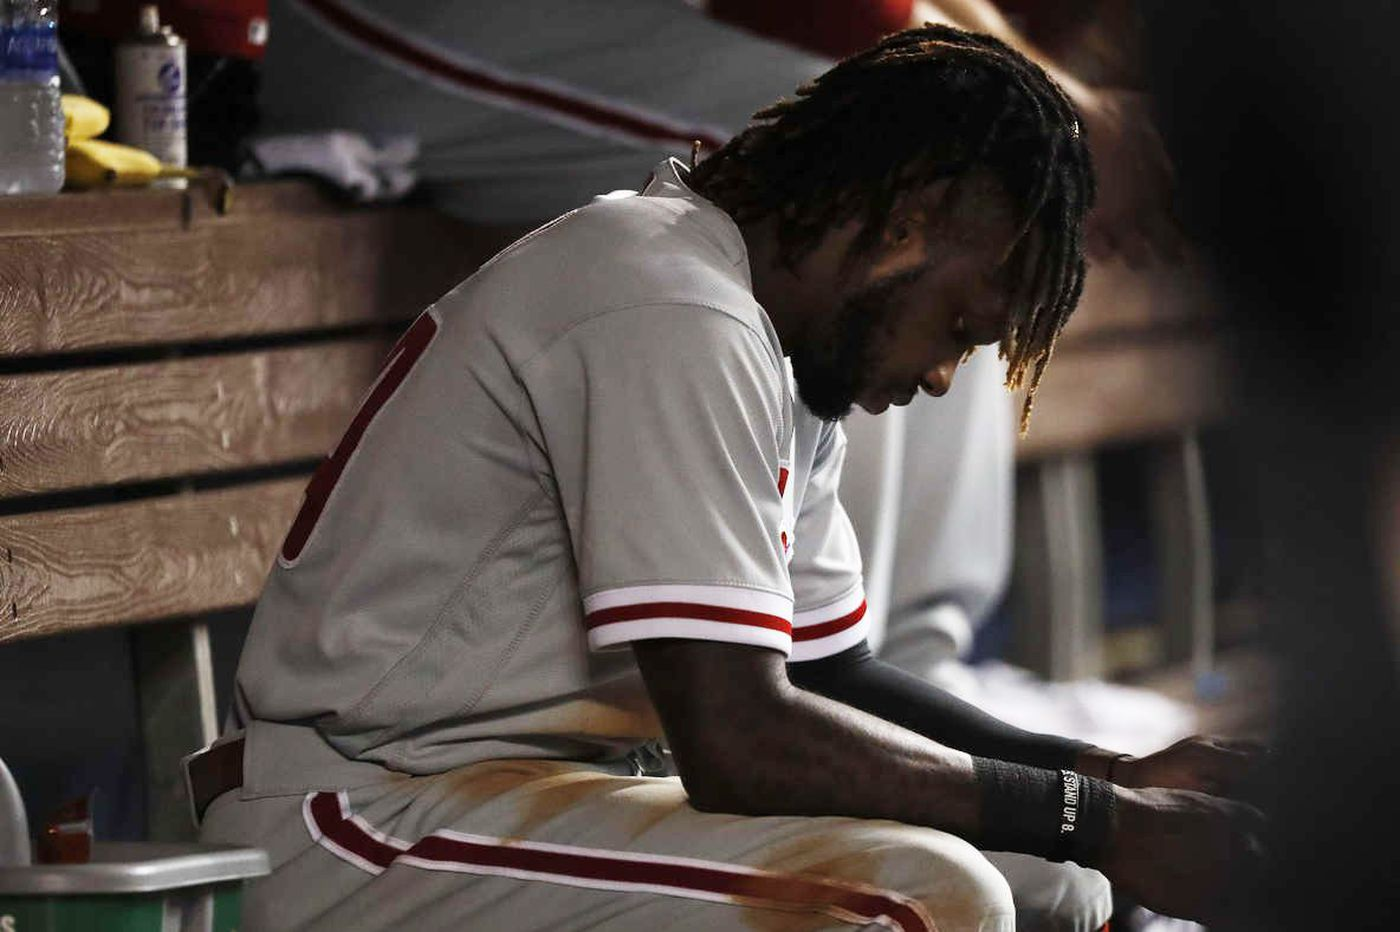 Phillies' offense goes quiet again in loss to Marlins, wastes opportunity to gain ground on Braves